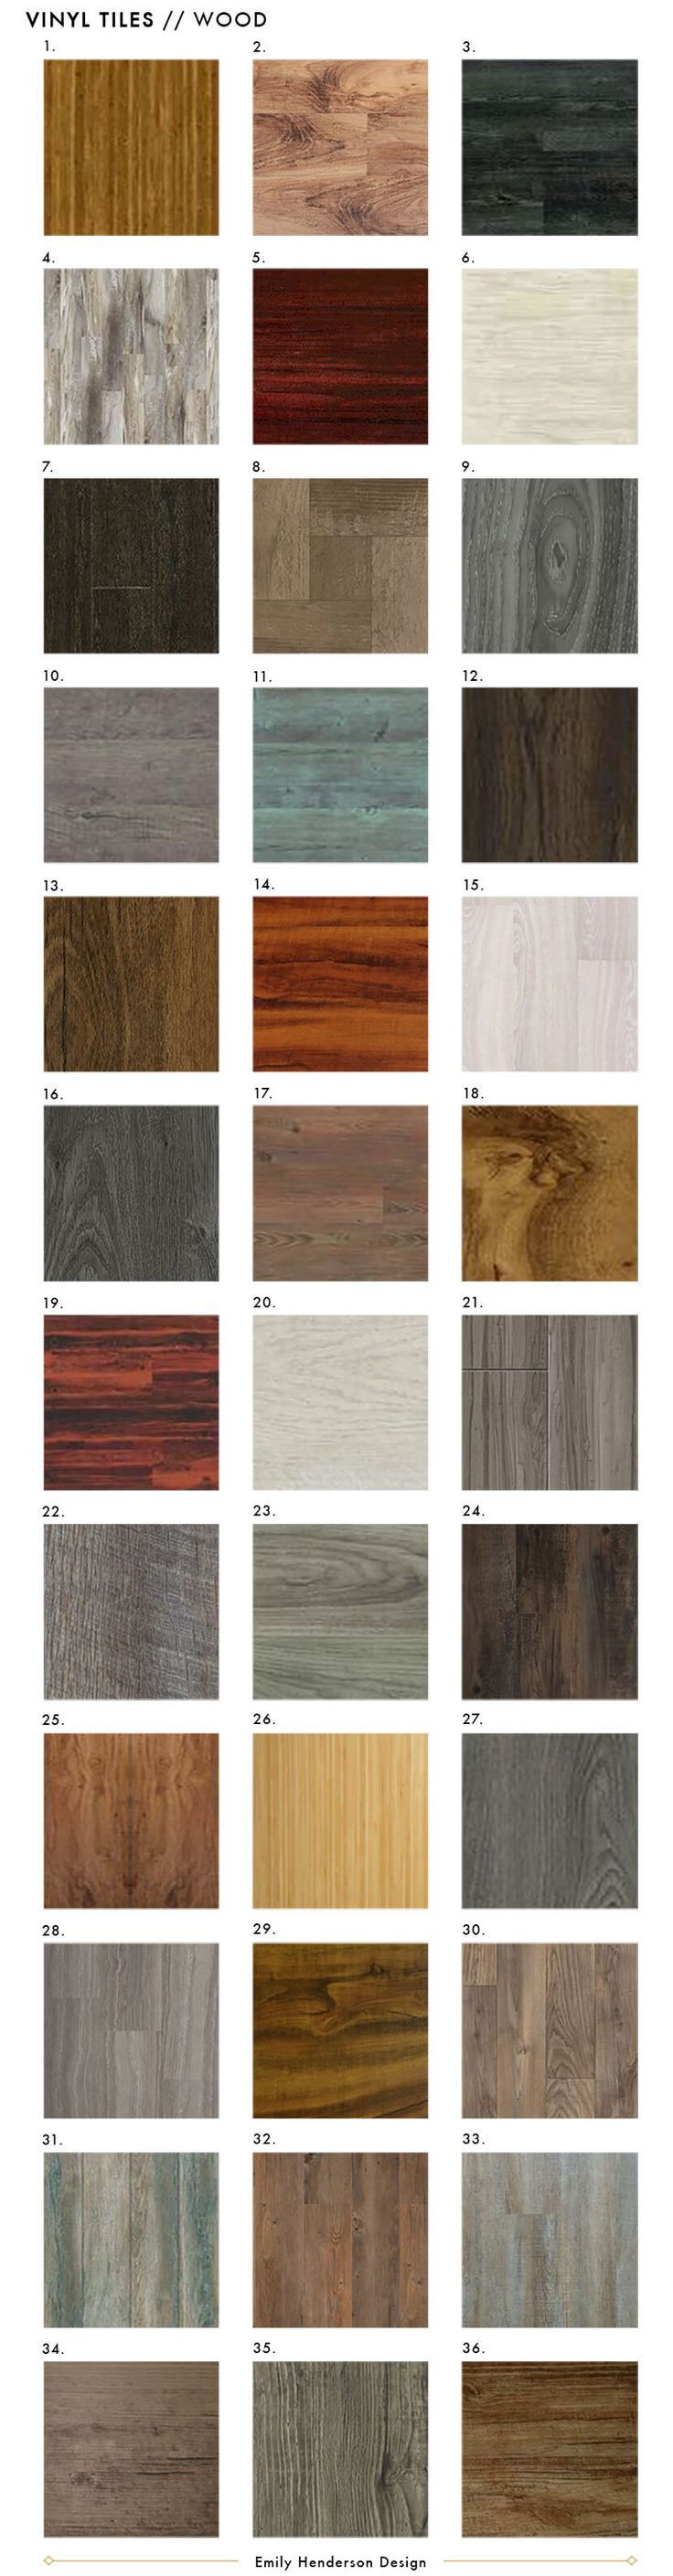 Vinyl flooring that looks like stained concrete modern house vinyl flooring that looks like stained concrete dailygadgetfo Image collections